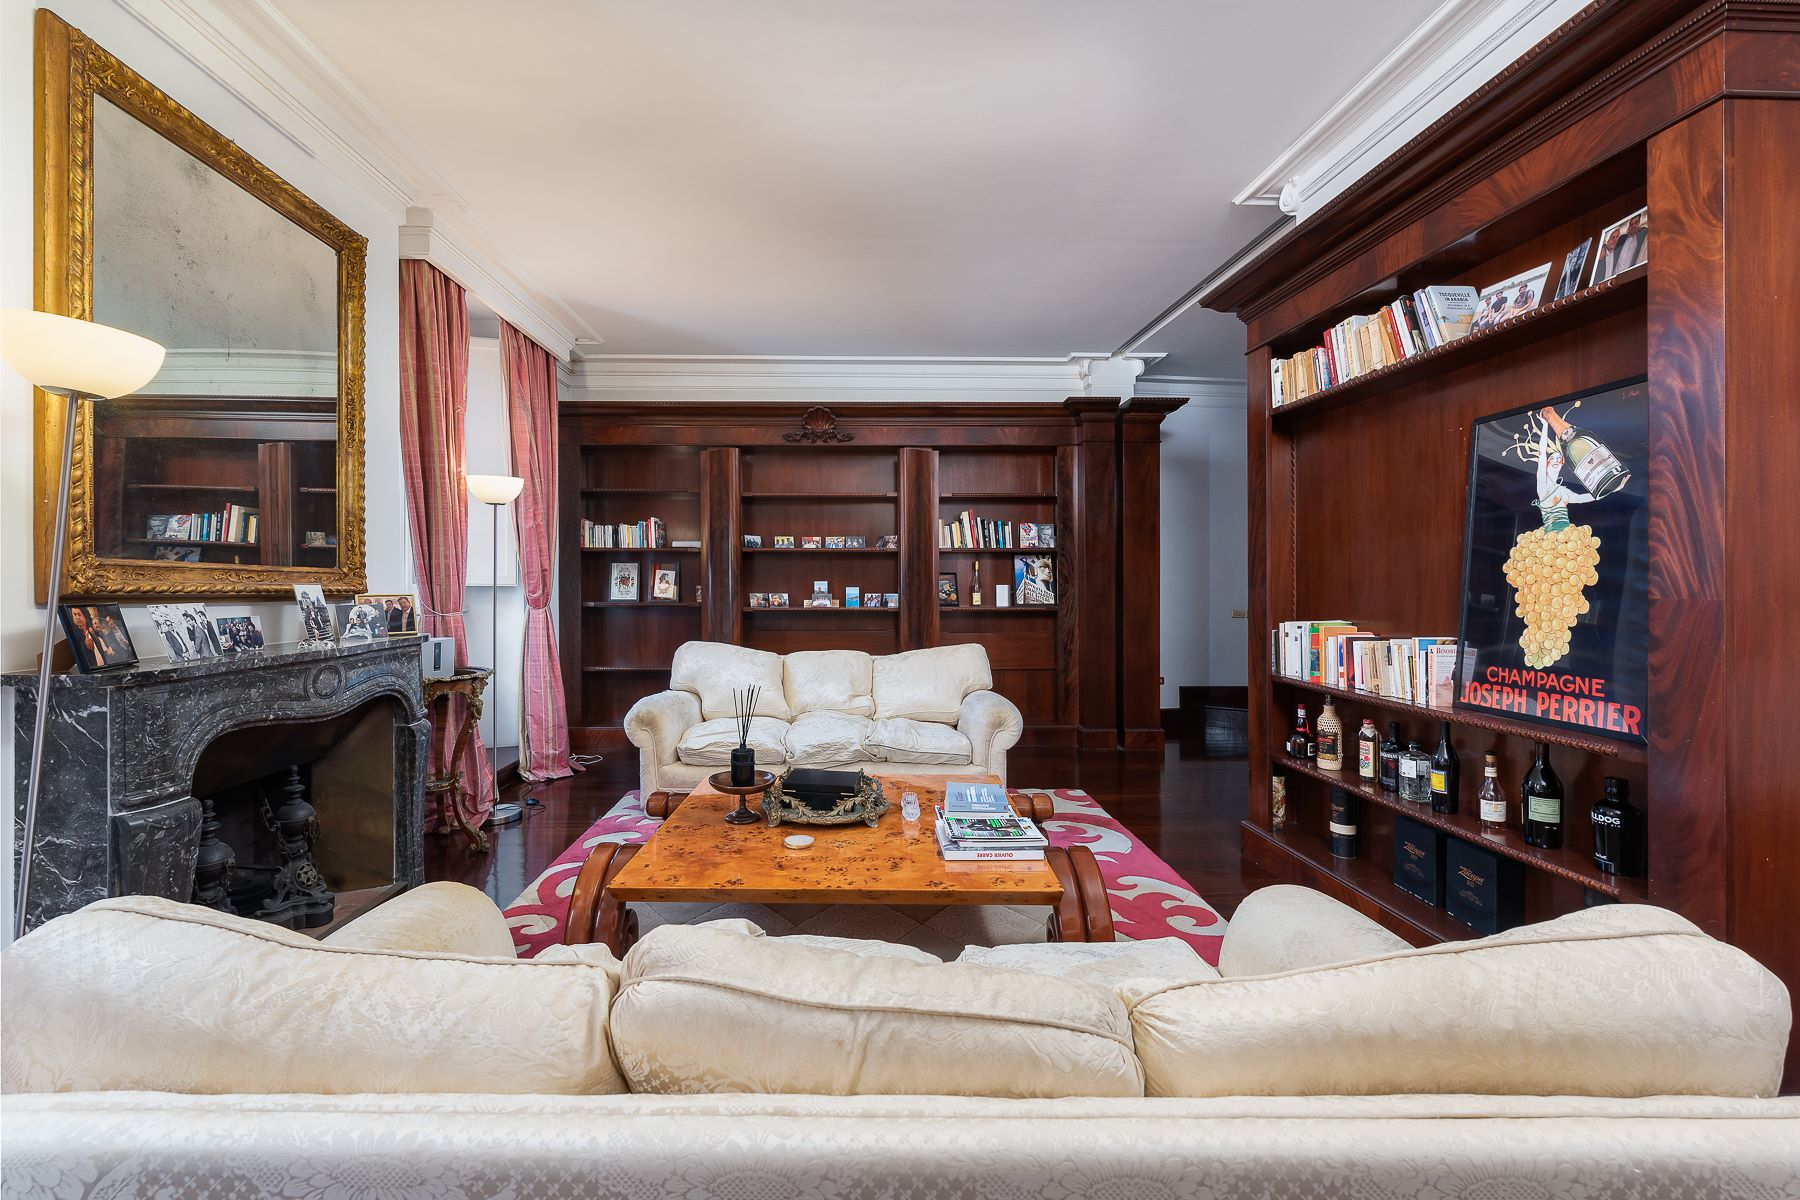 Property for Sale at Marvelous pied a terre in an historic palazzo Rome, Rome Italy